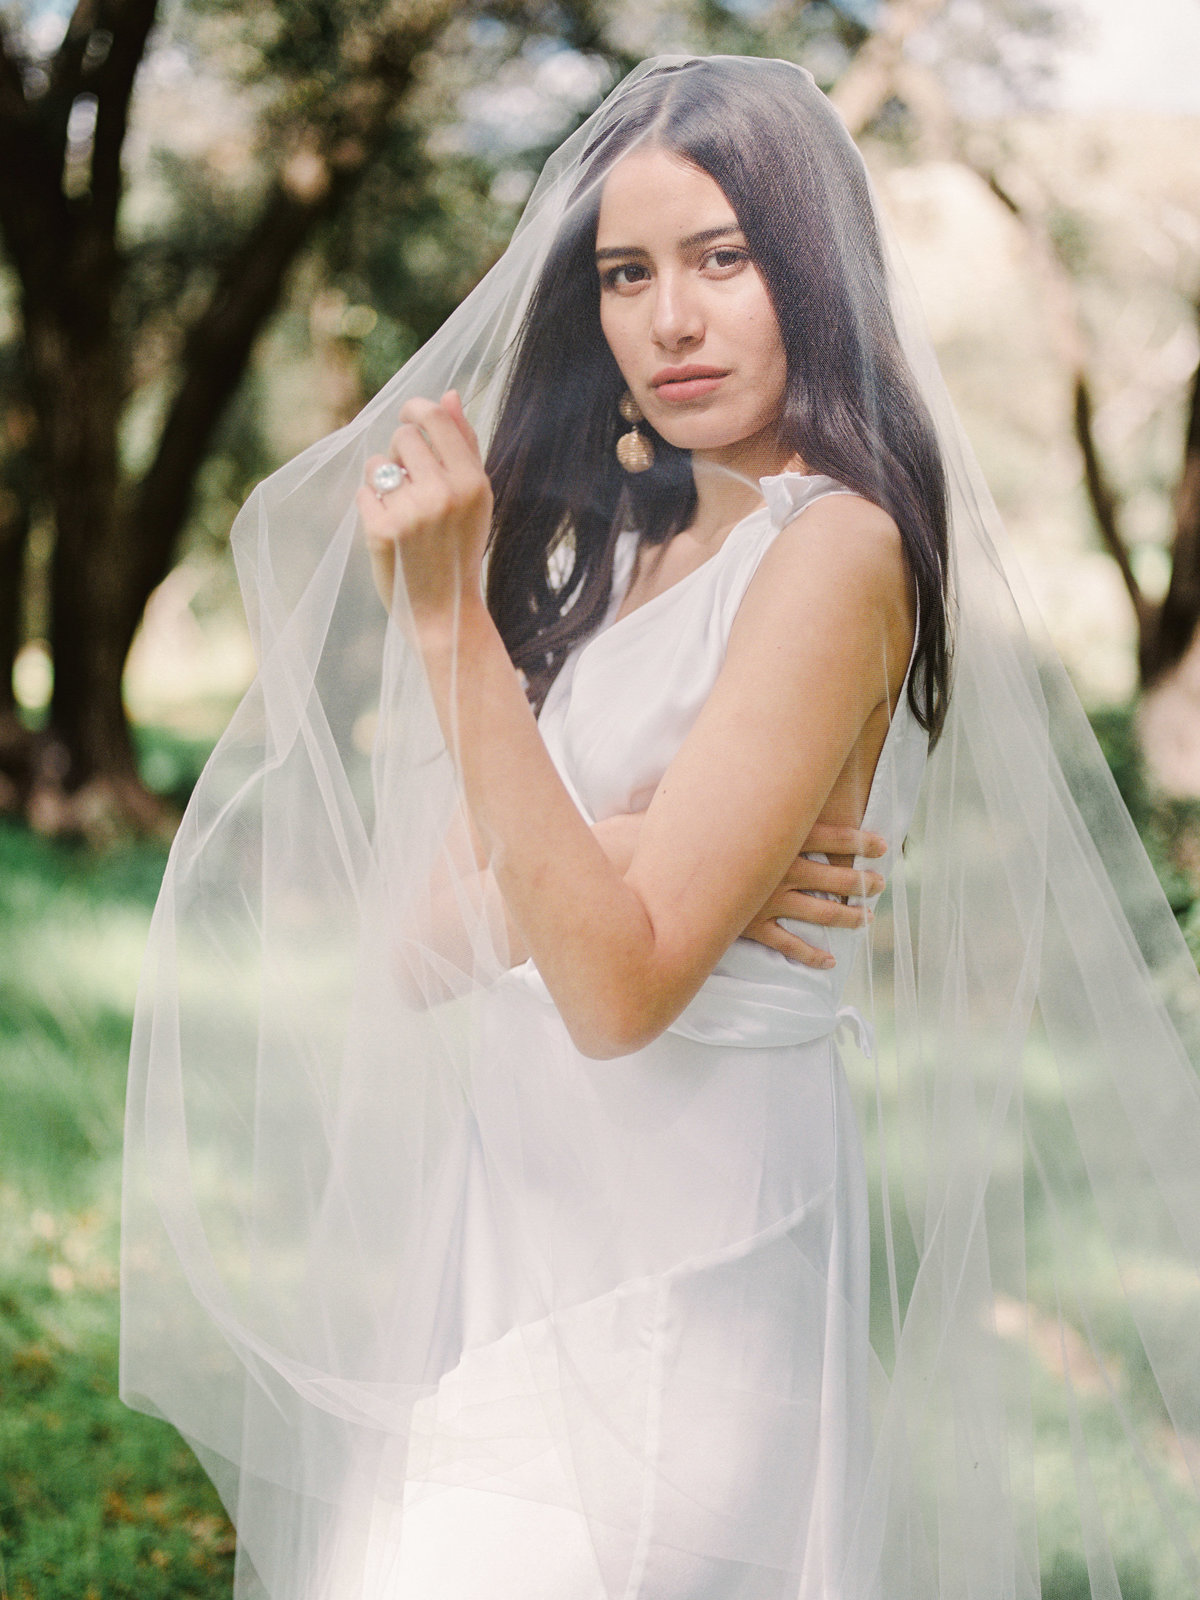 Babsie-Ly-Photography-Fine-Art-Film-Wedding-Bridal-Editorial-in-Hidden-Oaks-San-Diego-003